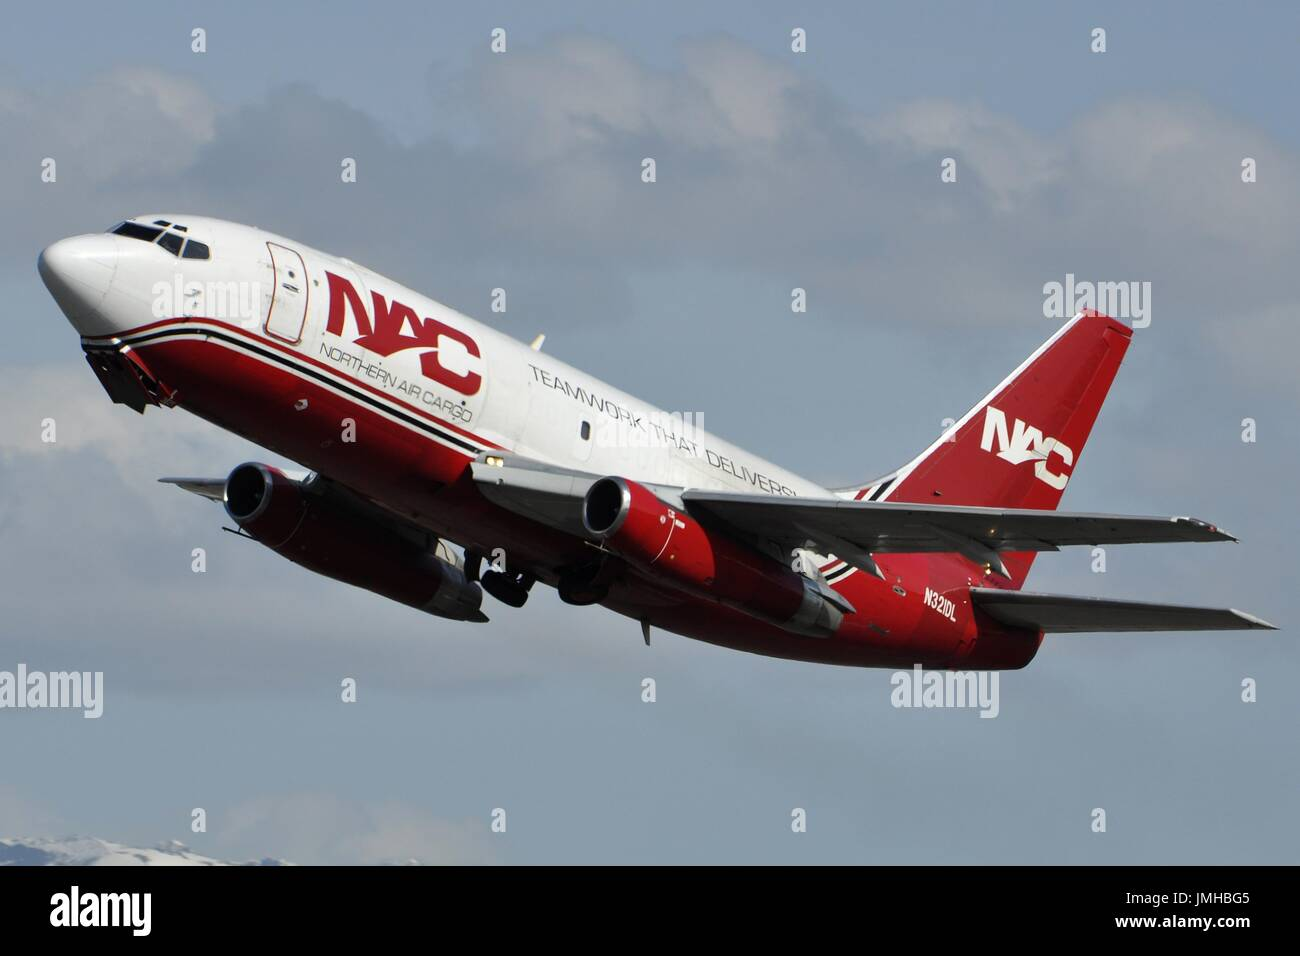 NORTHERN AIR CARGO BOEING 737-200F - Stock Image